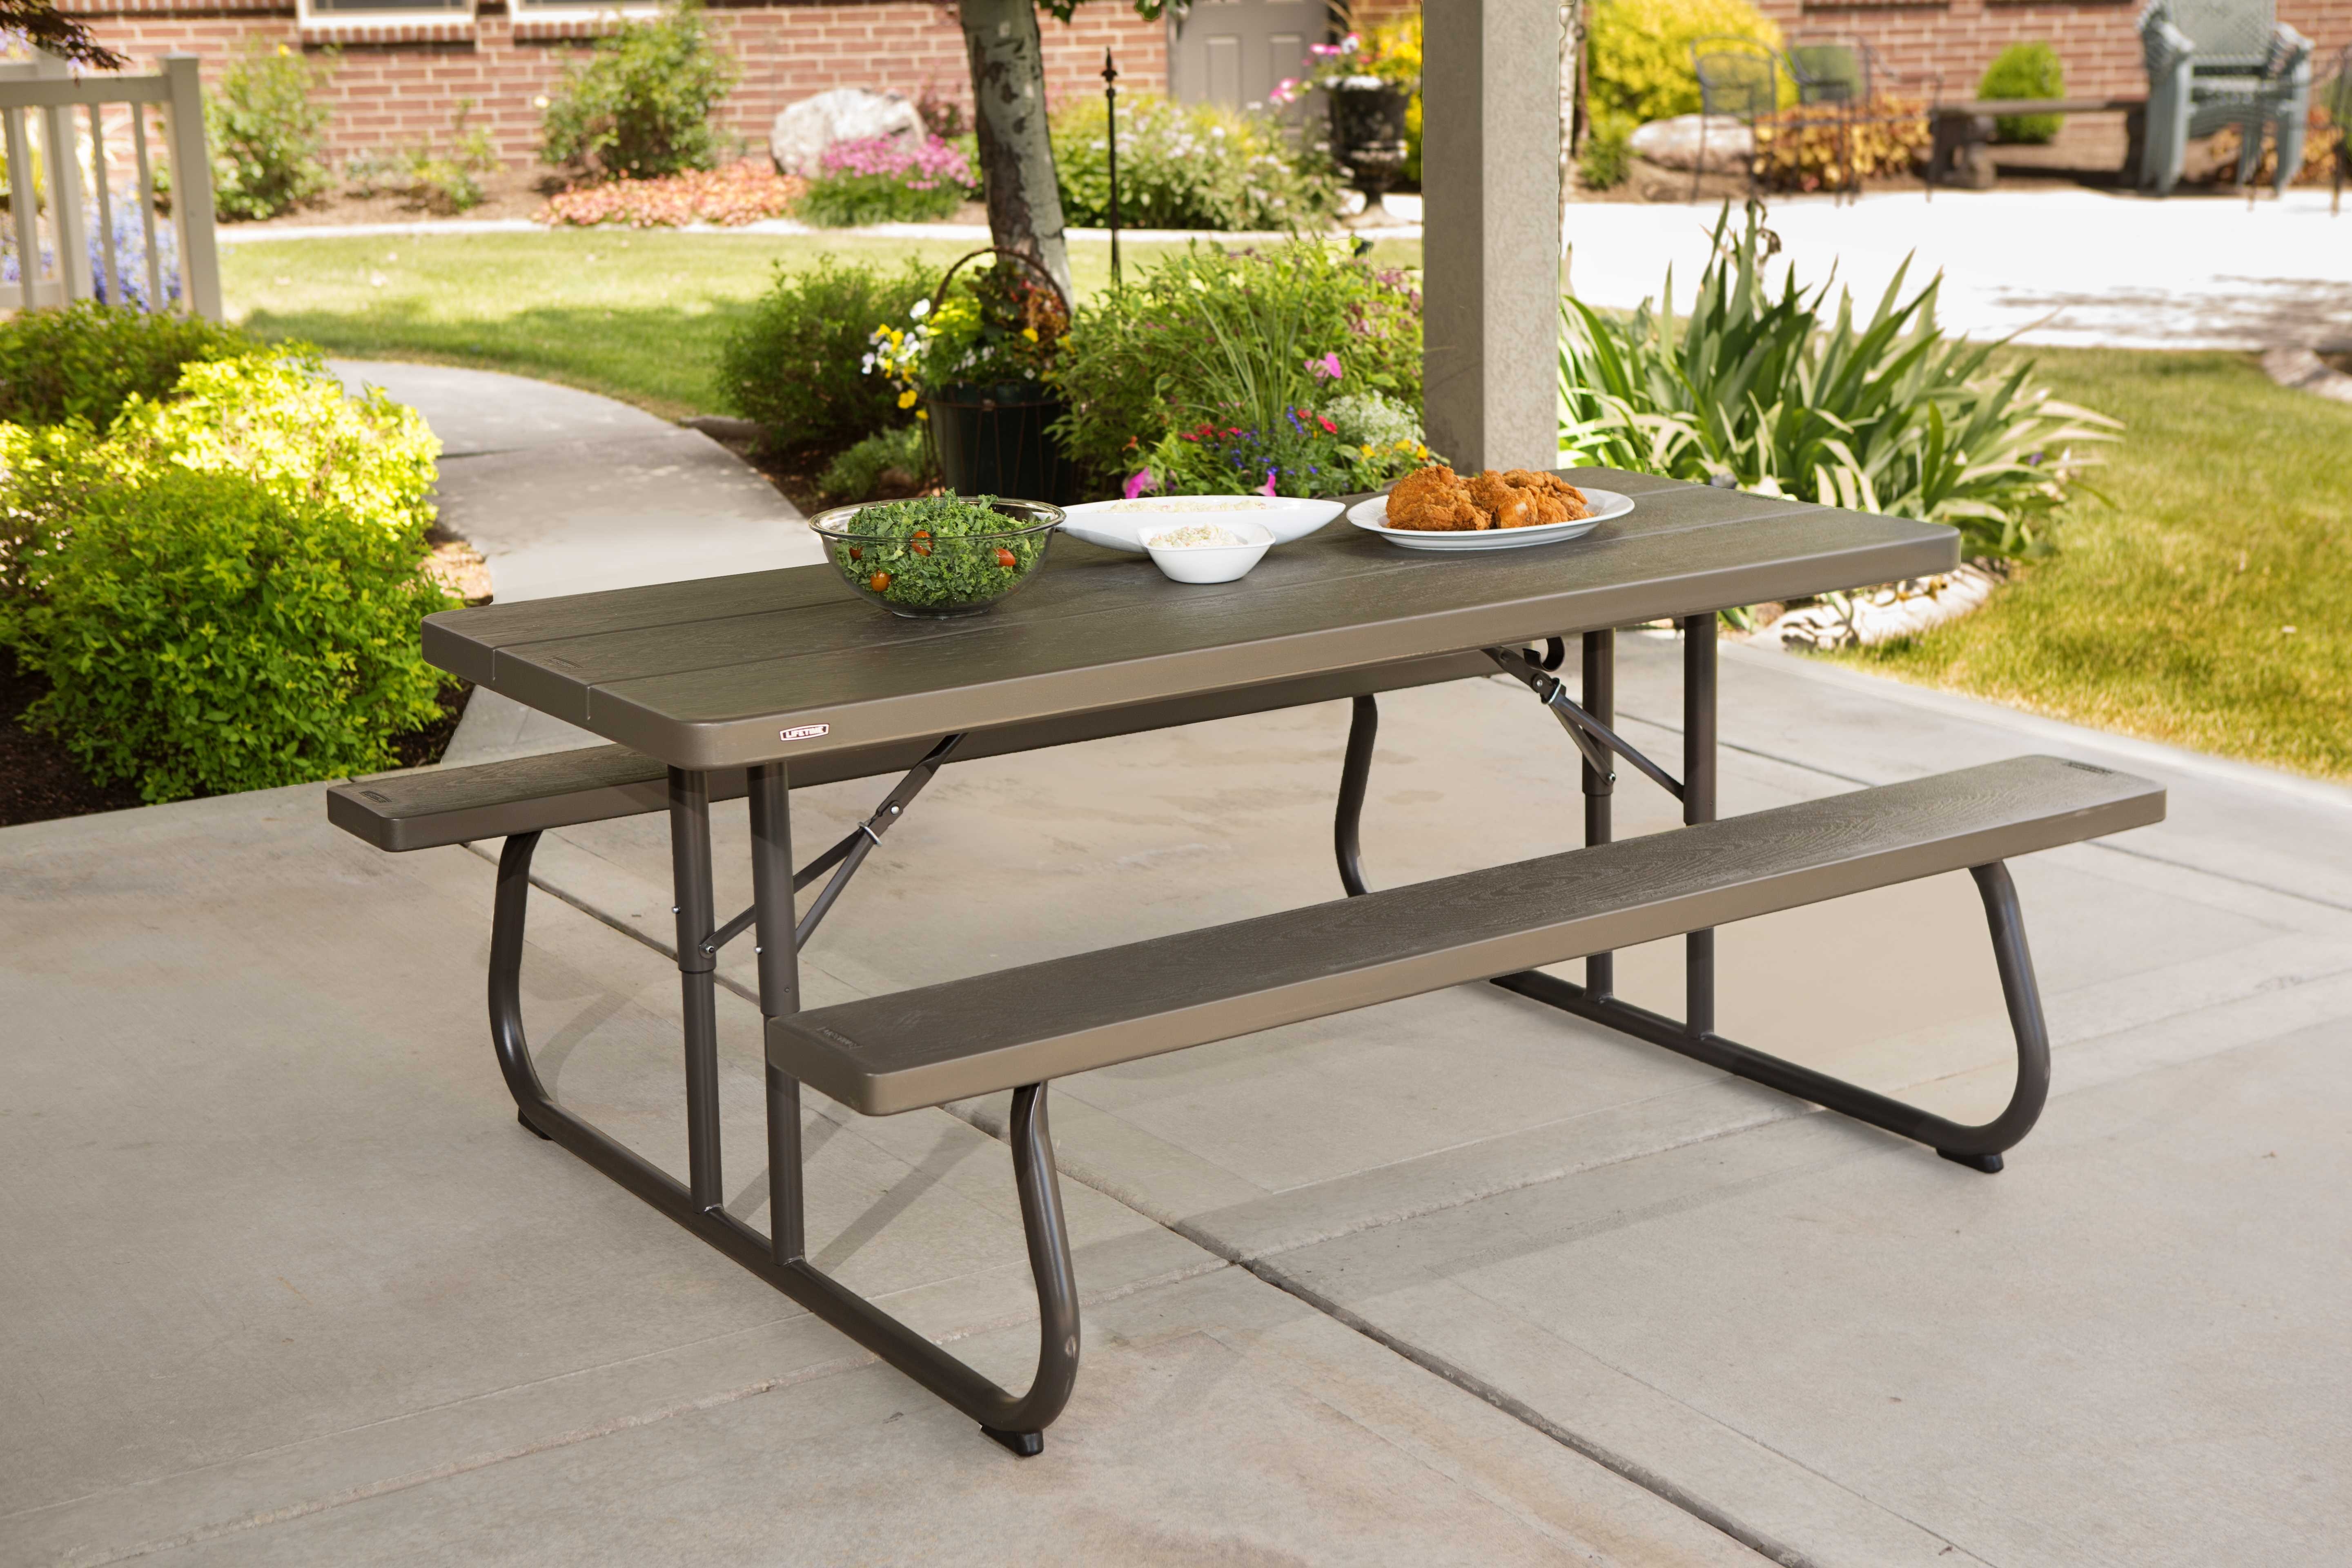 Lifetime Brown Plastic Folding Picnic Table 10 Pack On